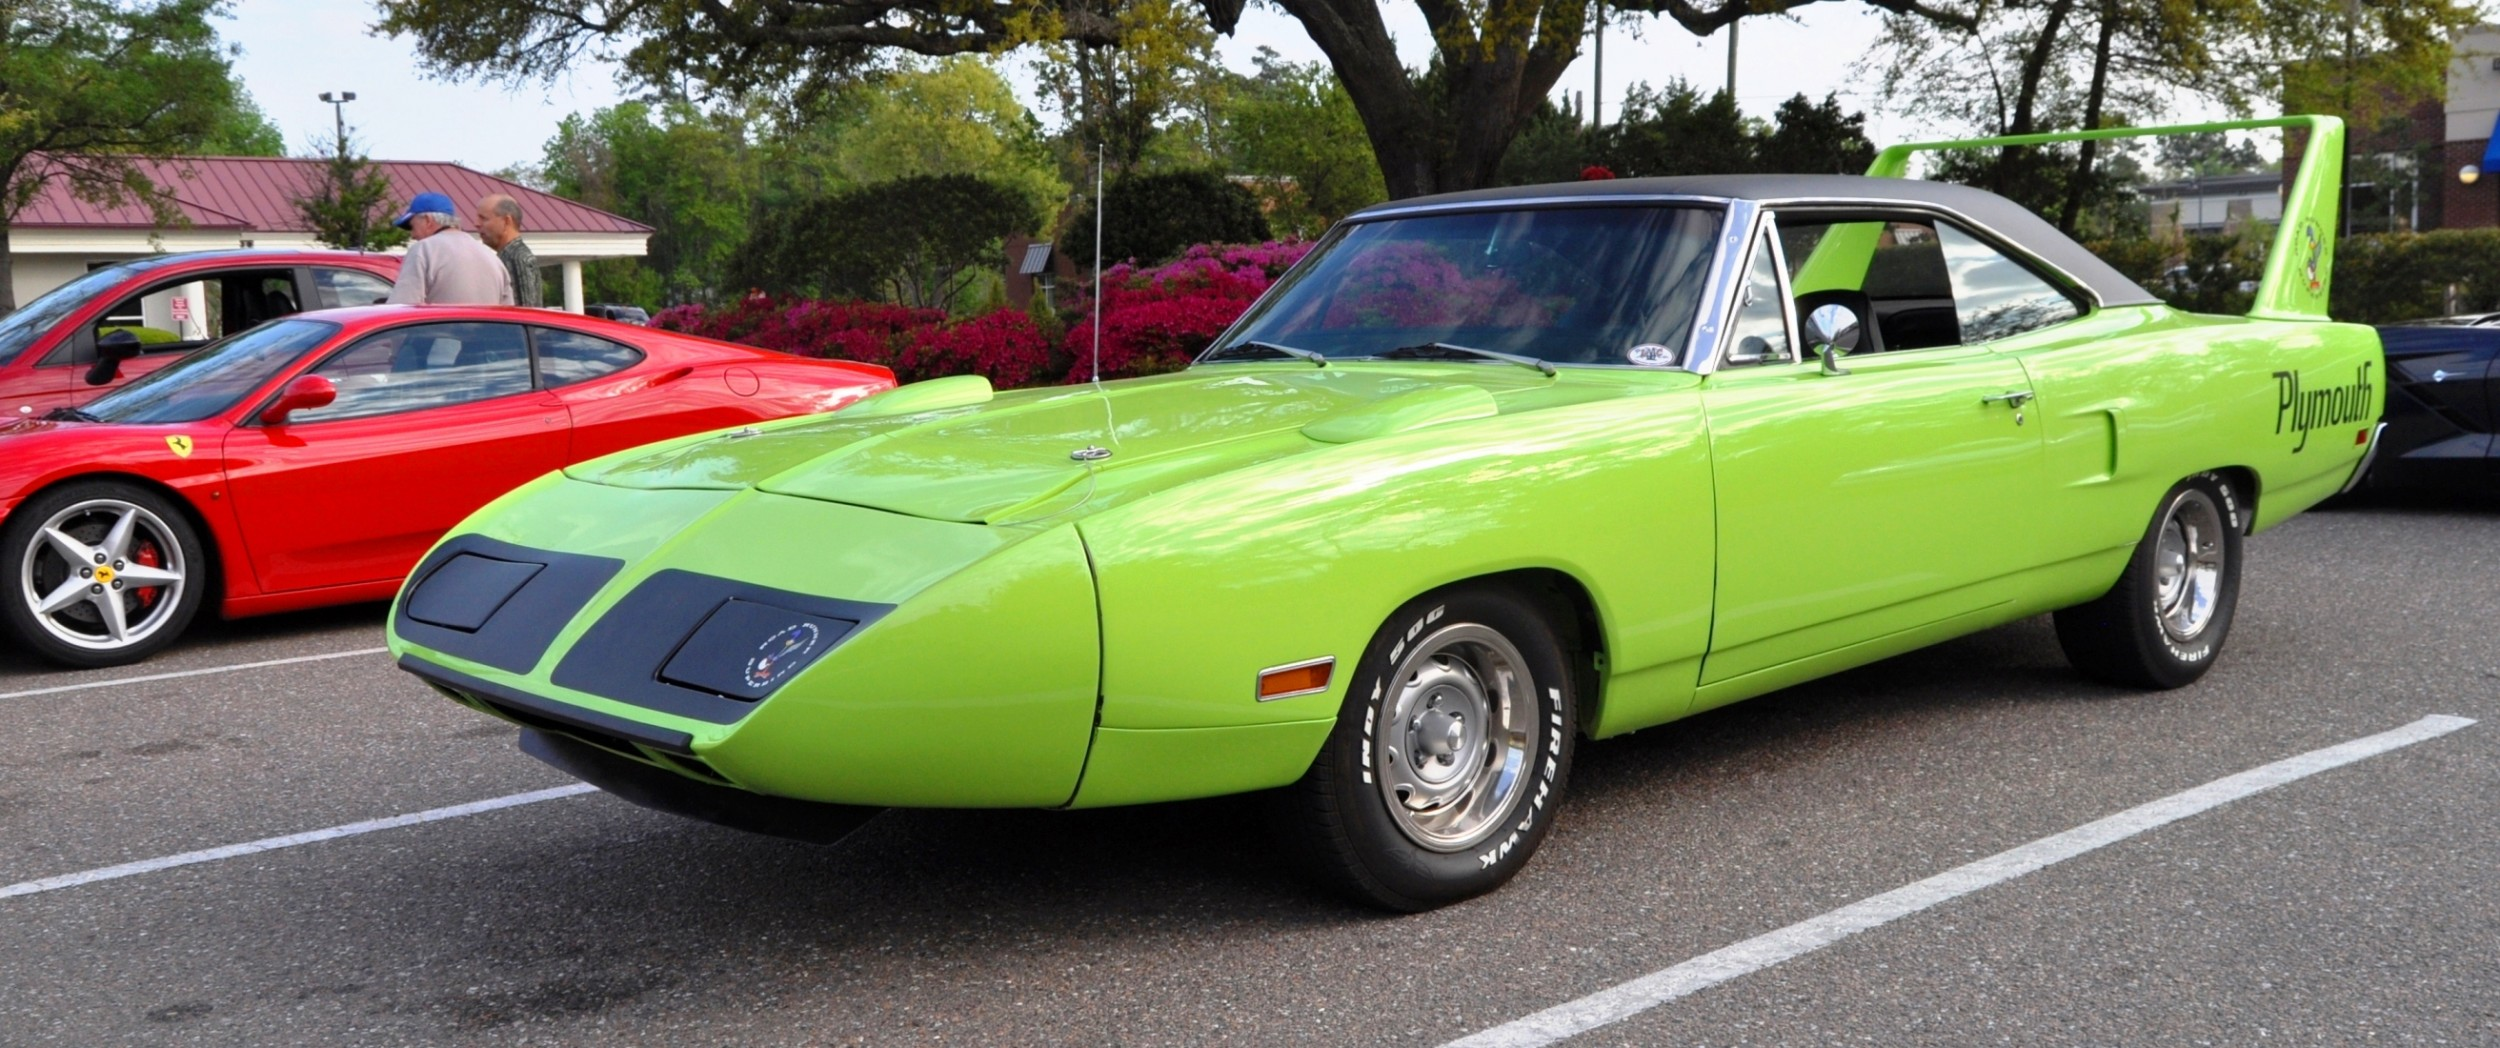 1970 Plymouth Road Runner Superbird At Charleston Cars